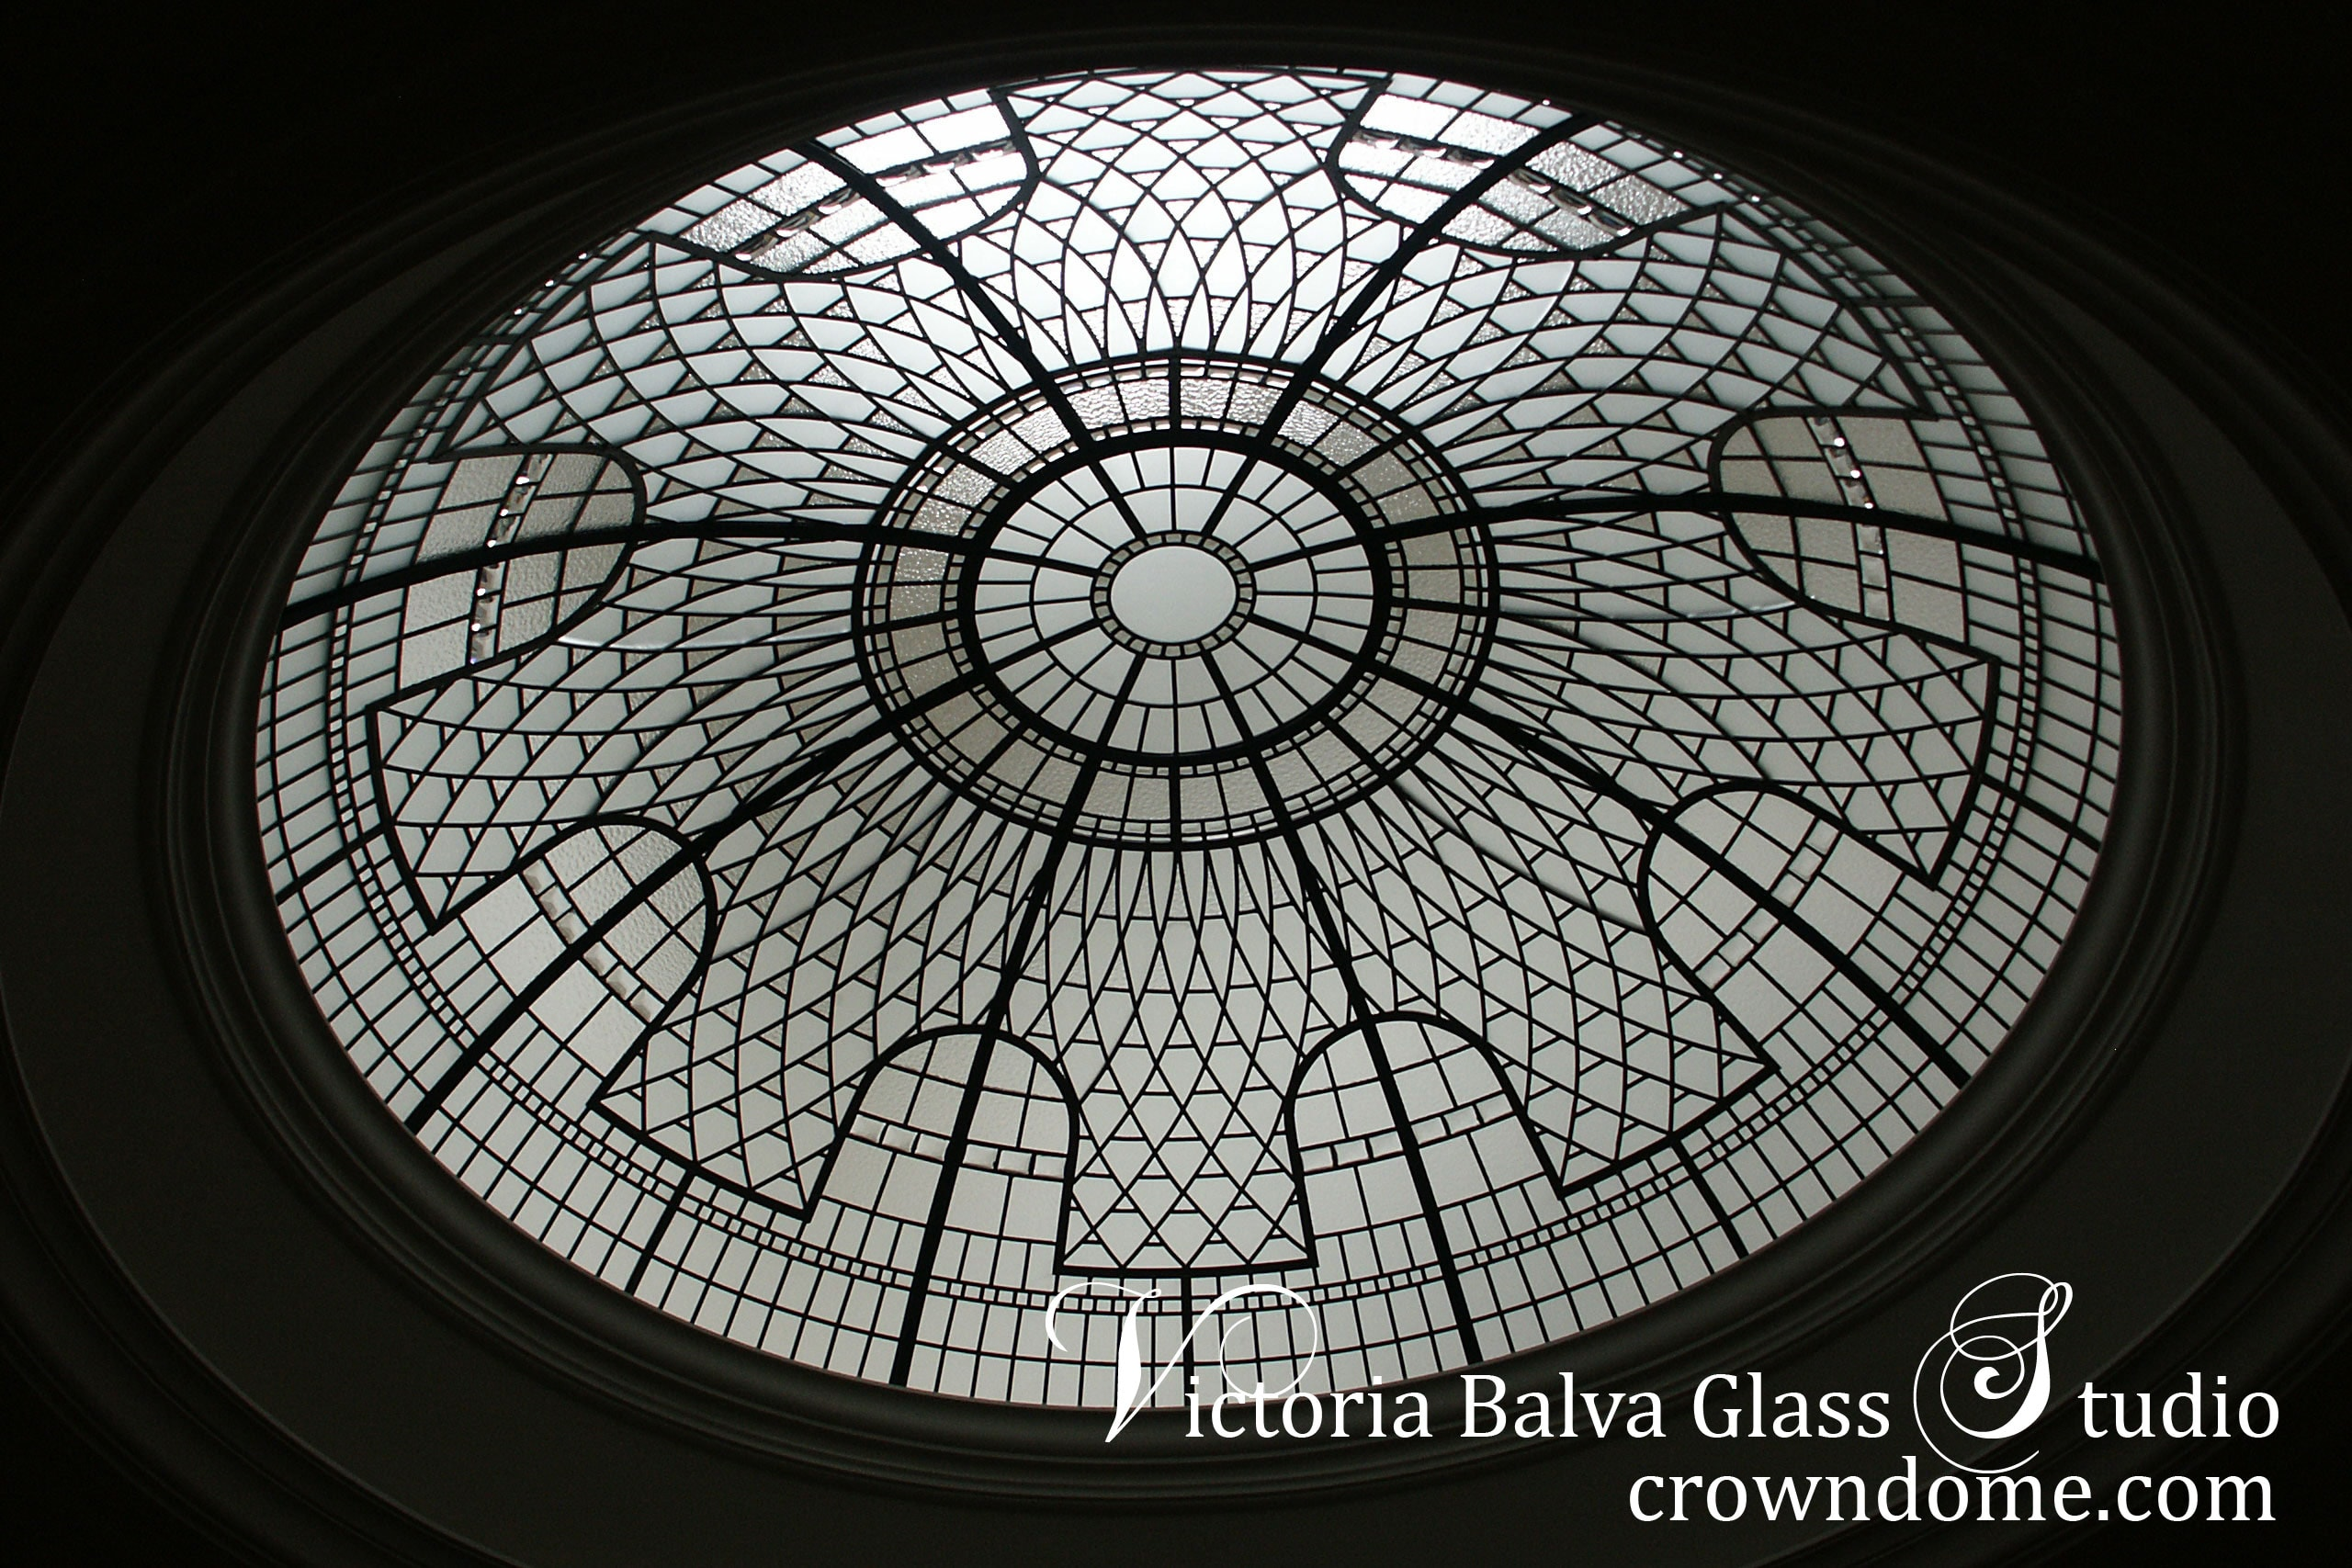 Leaded glass artistic dome skylight with entrance custom built a luxury residence in Great Neck, Long Island, New York. Elegant classical leaded glass dome design with beveled glass and crystal jewels accent. Decorative glass domed ceiling design by glass artist Victoria Balva